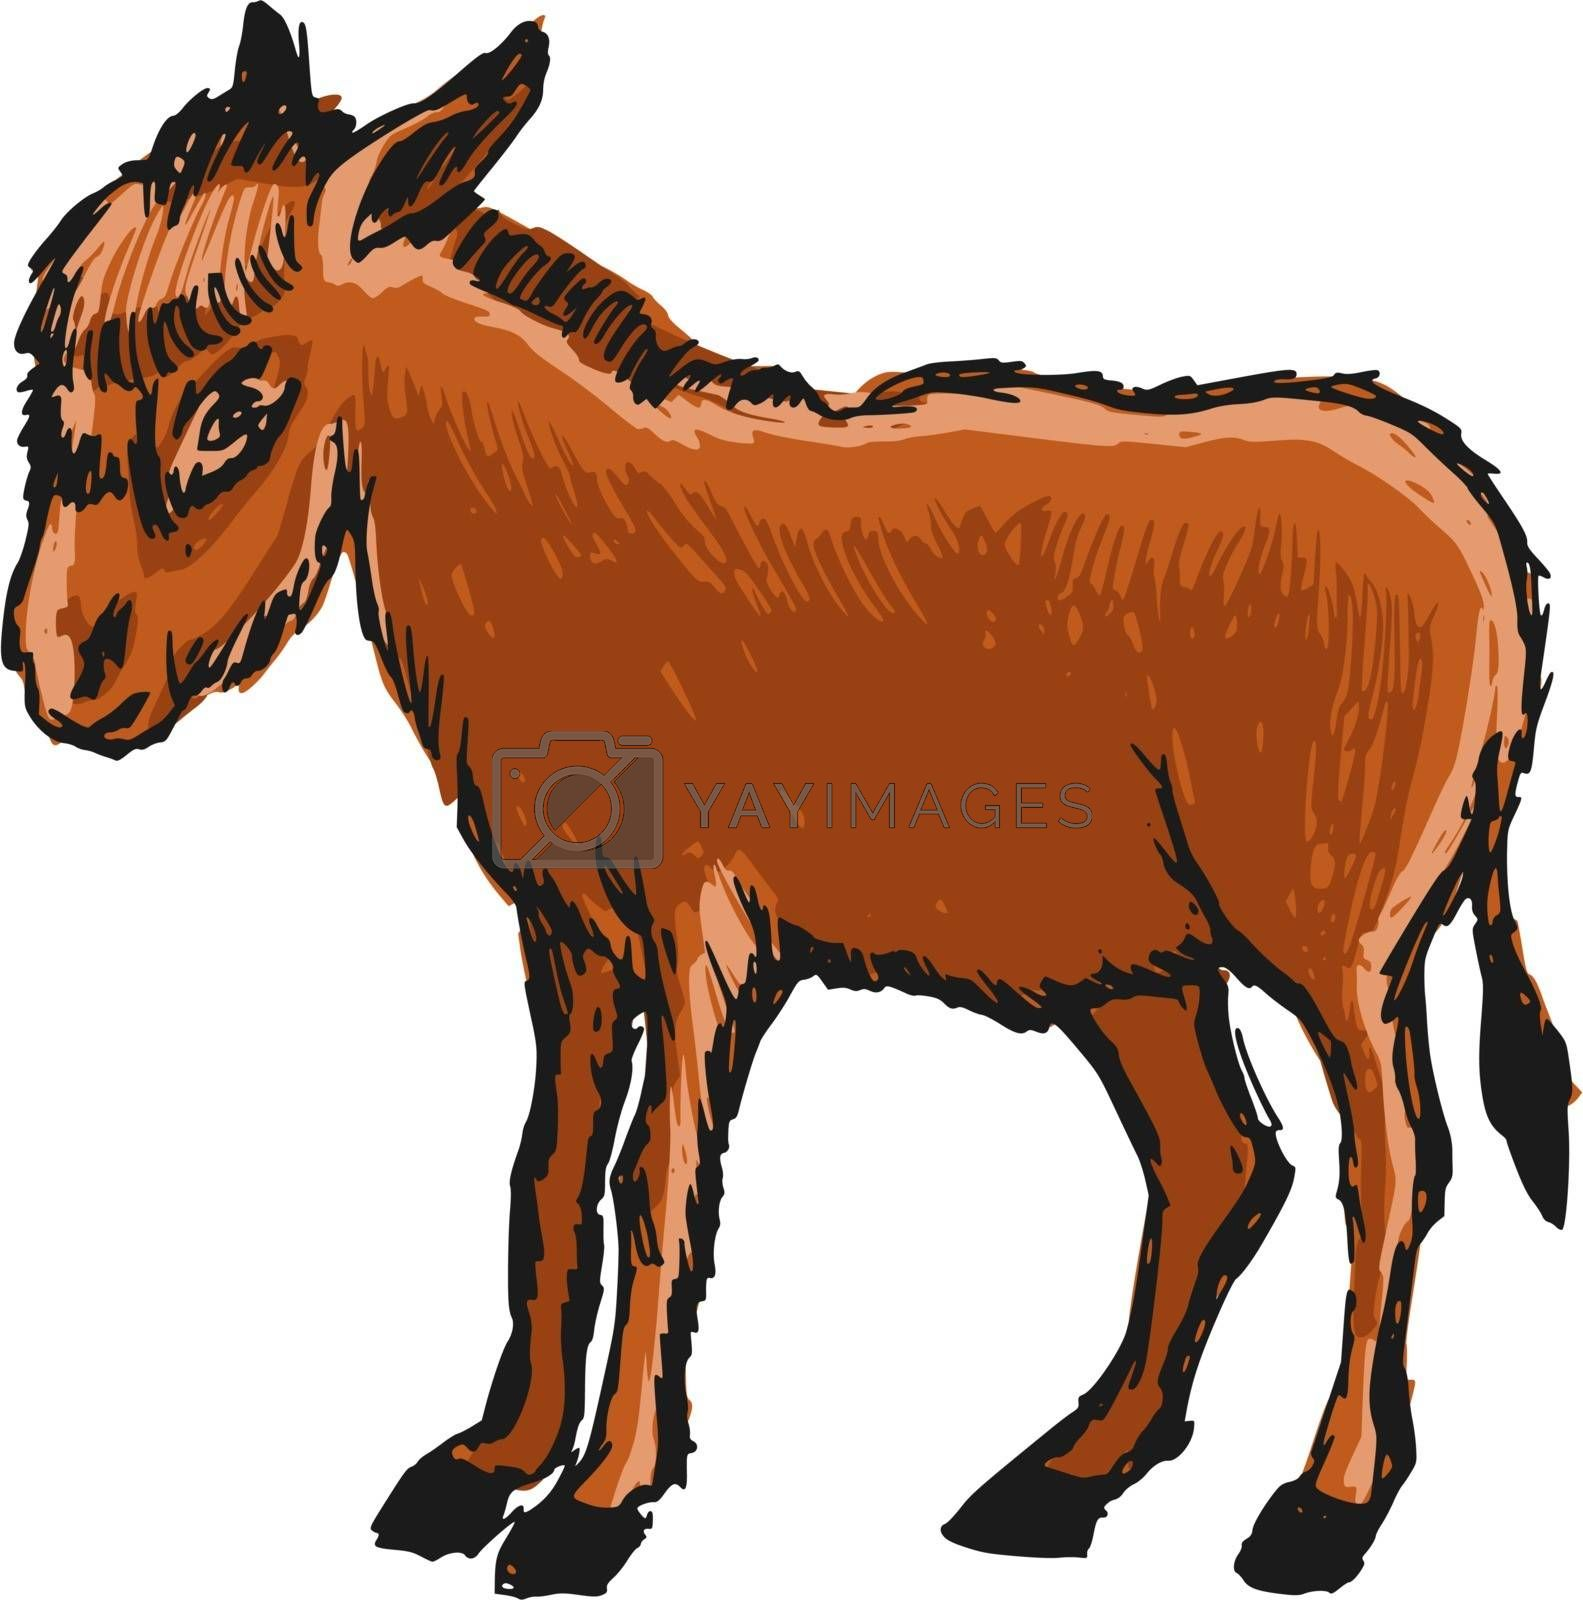 Royalty free image of donkey by Perysty